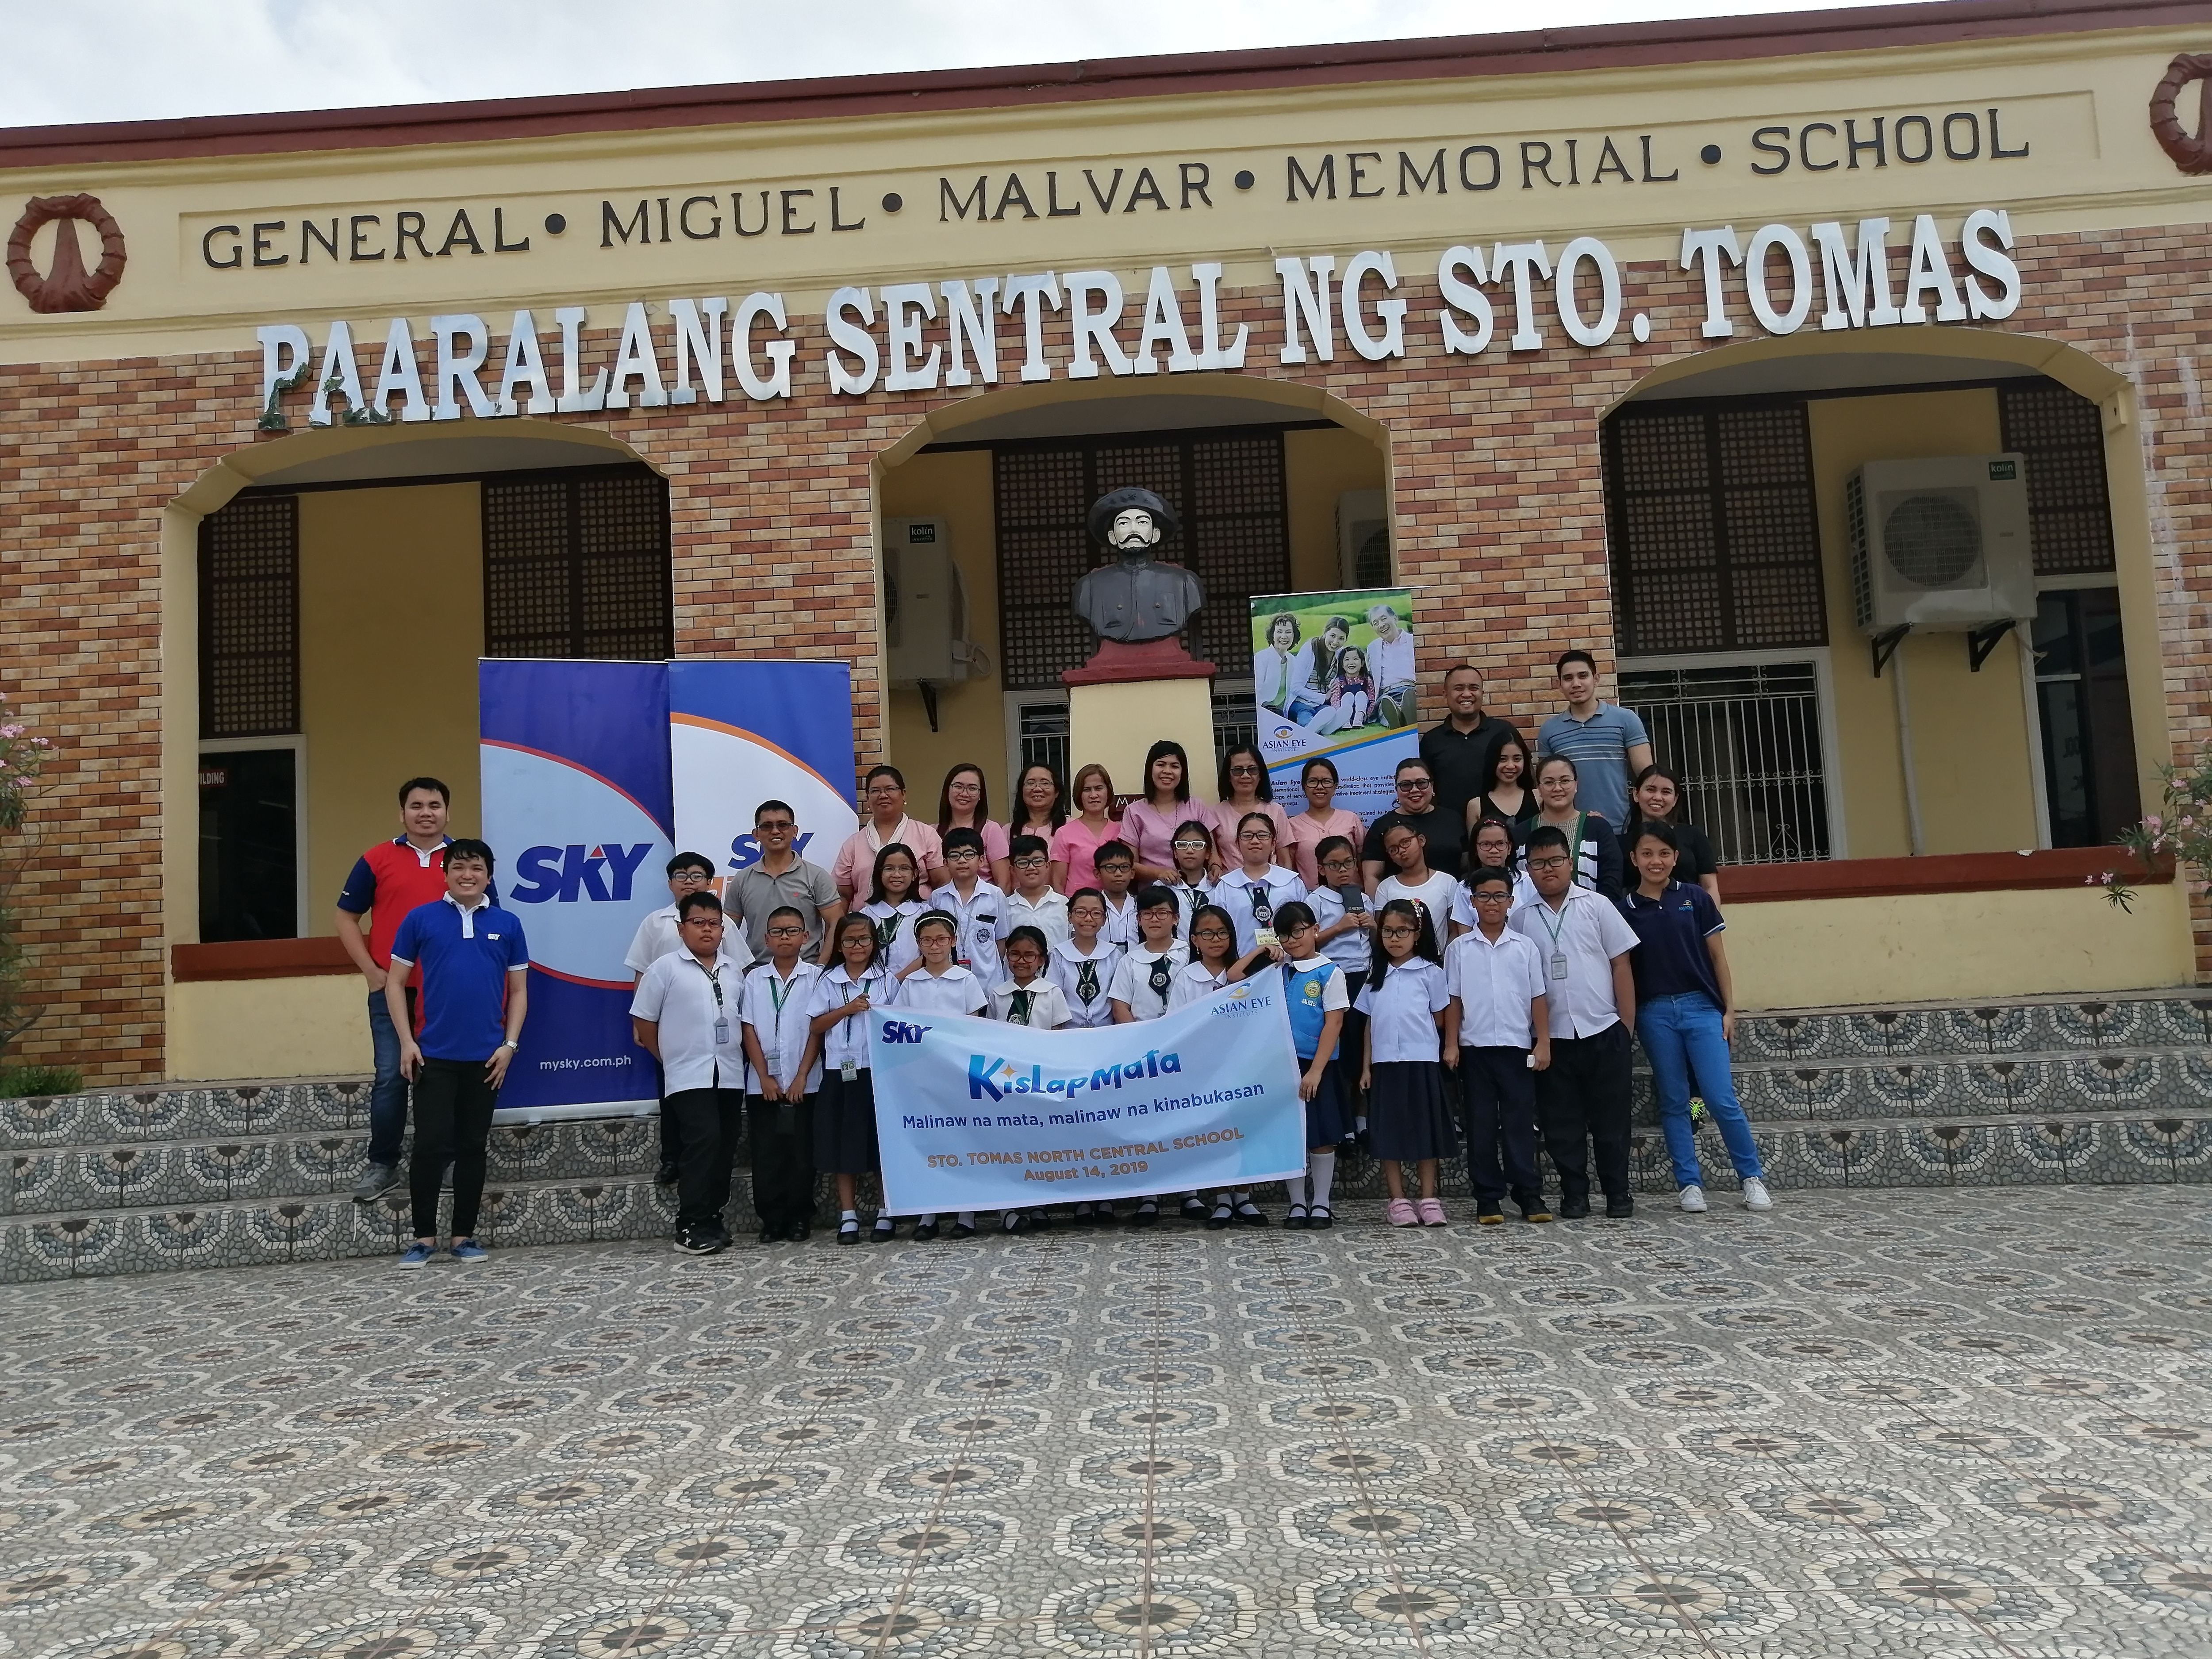 Team and students posing in front of school